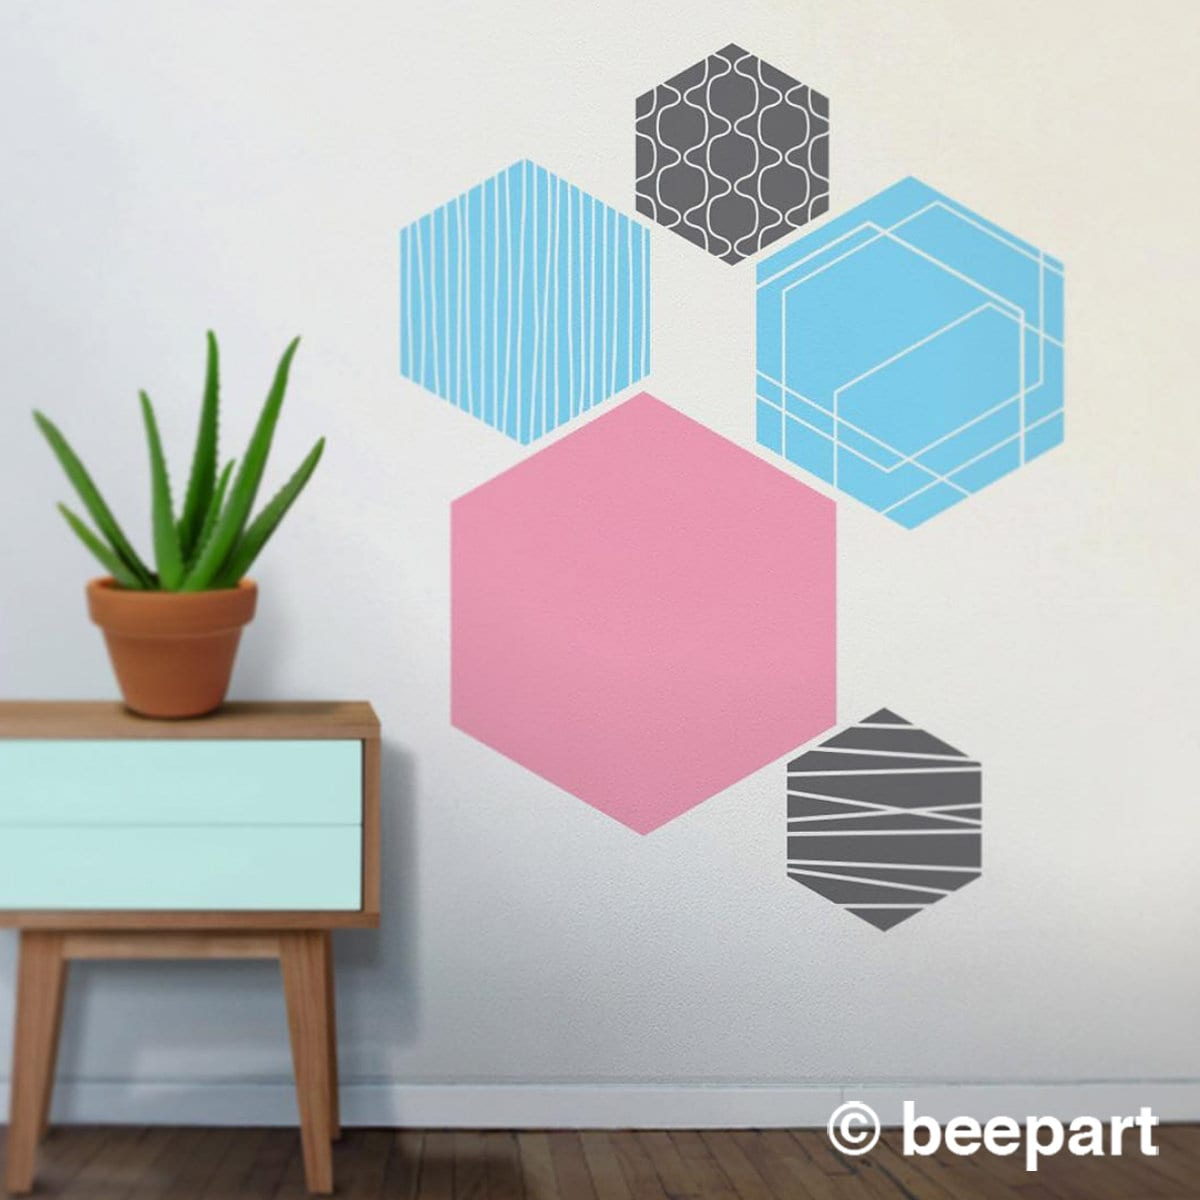 Beepart Vinyl Wall Decals And Illustration